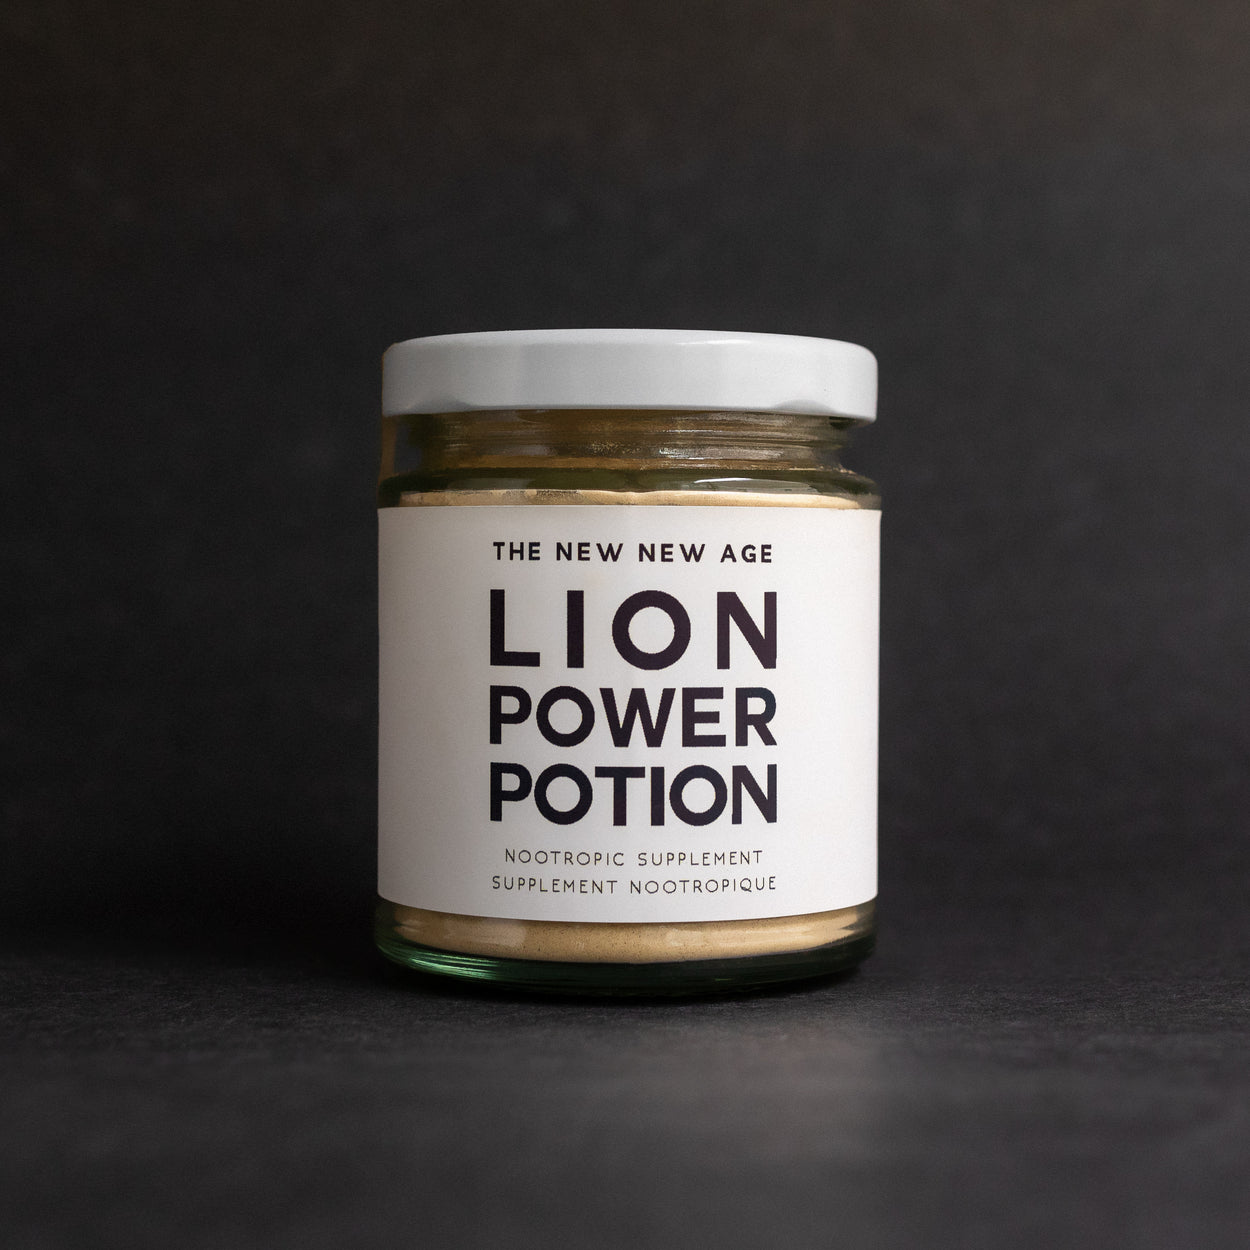 Lion Power Potion